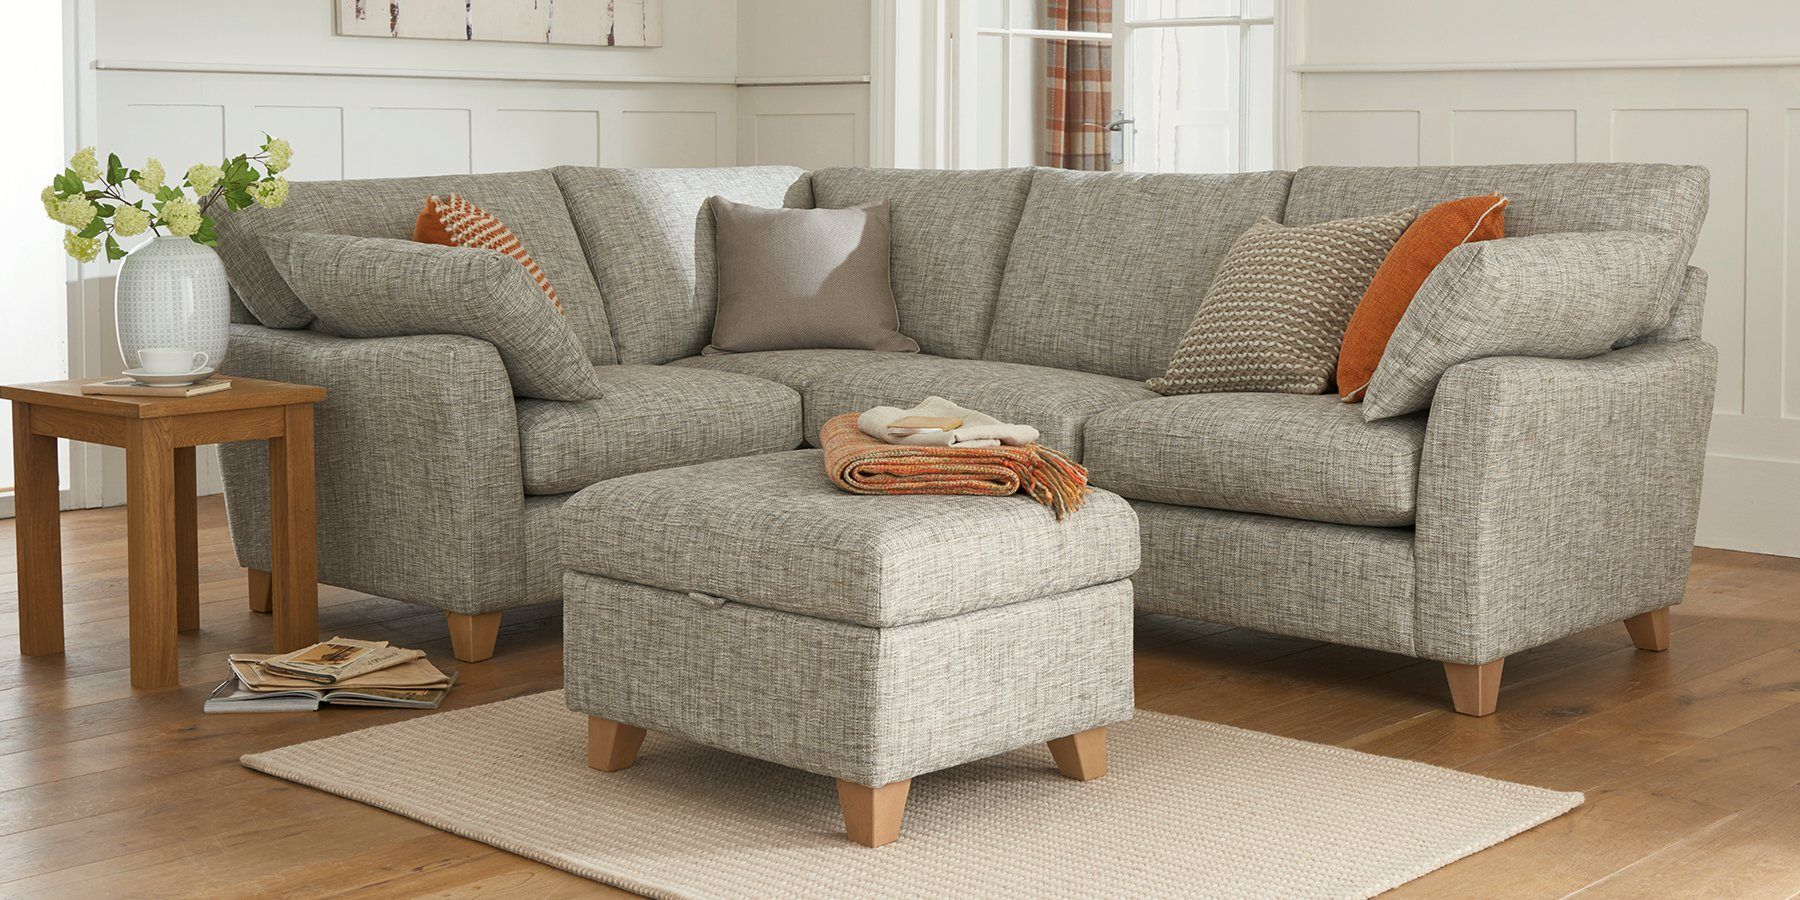 Buy Alexis Corner Sofa Left Hand 4 Seats Textured Weave Mid French Grey Low Tapered Light From The Next Uk On With Images Corner Sofa Home Furniture Leather Shag Rug